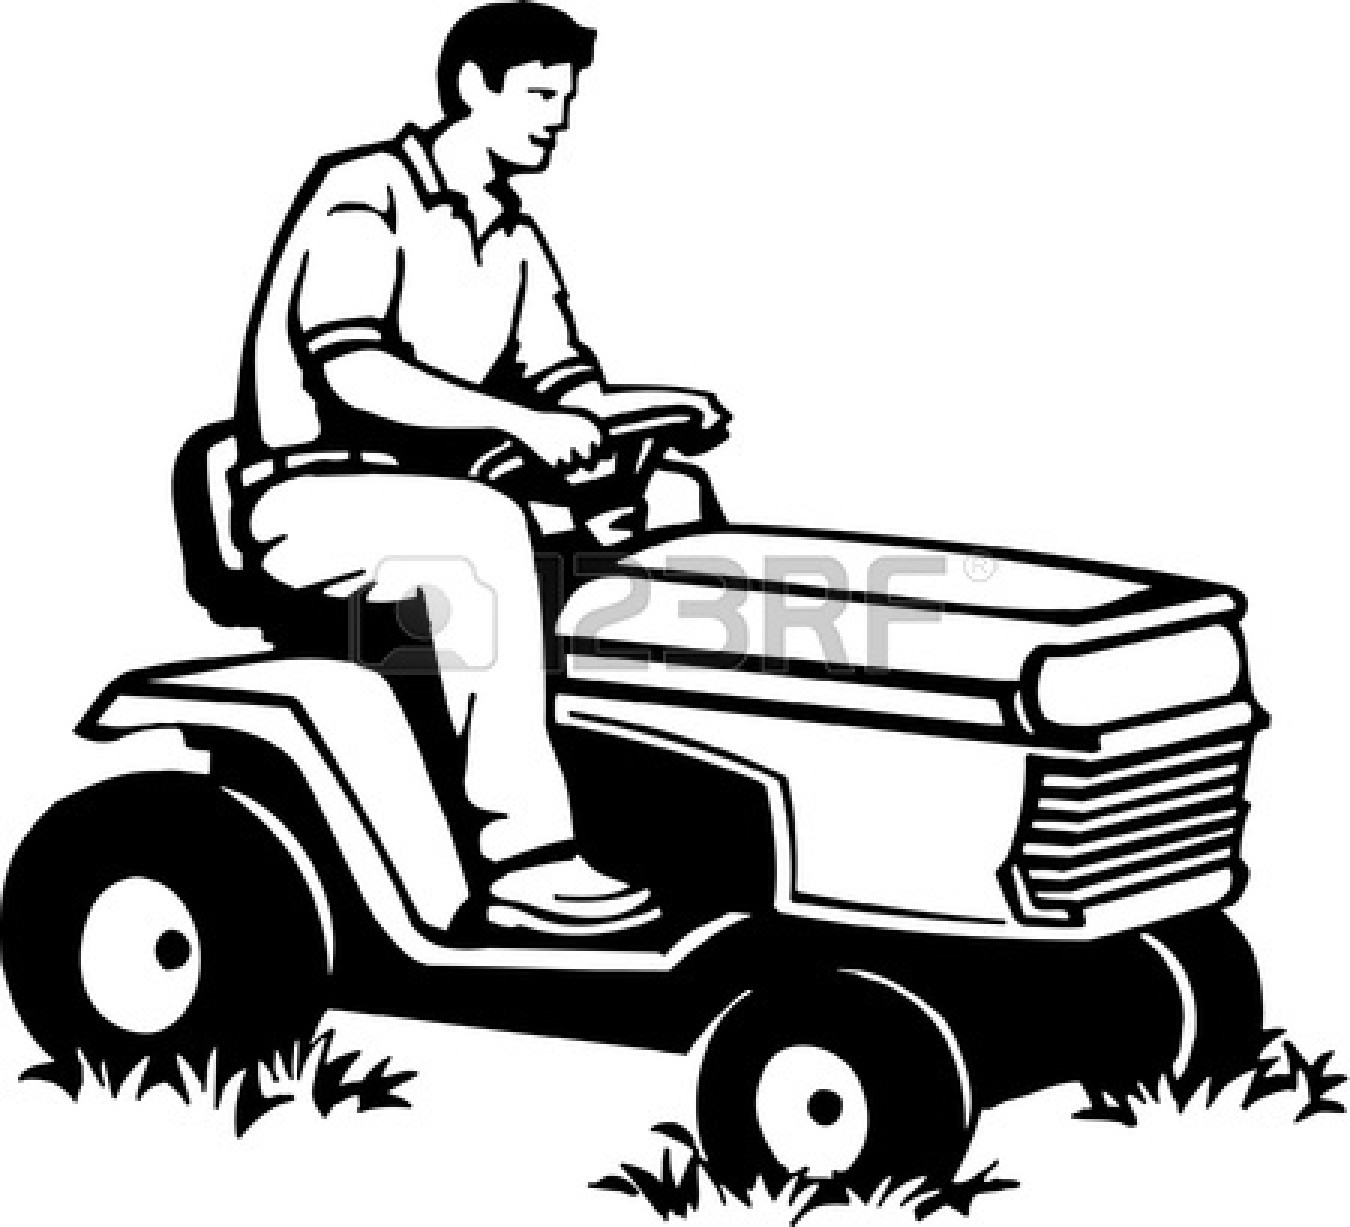 riding lawn mower clip art black and white